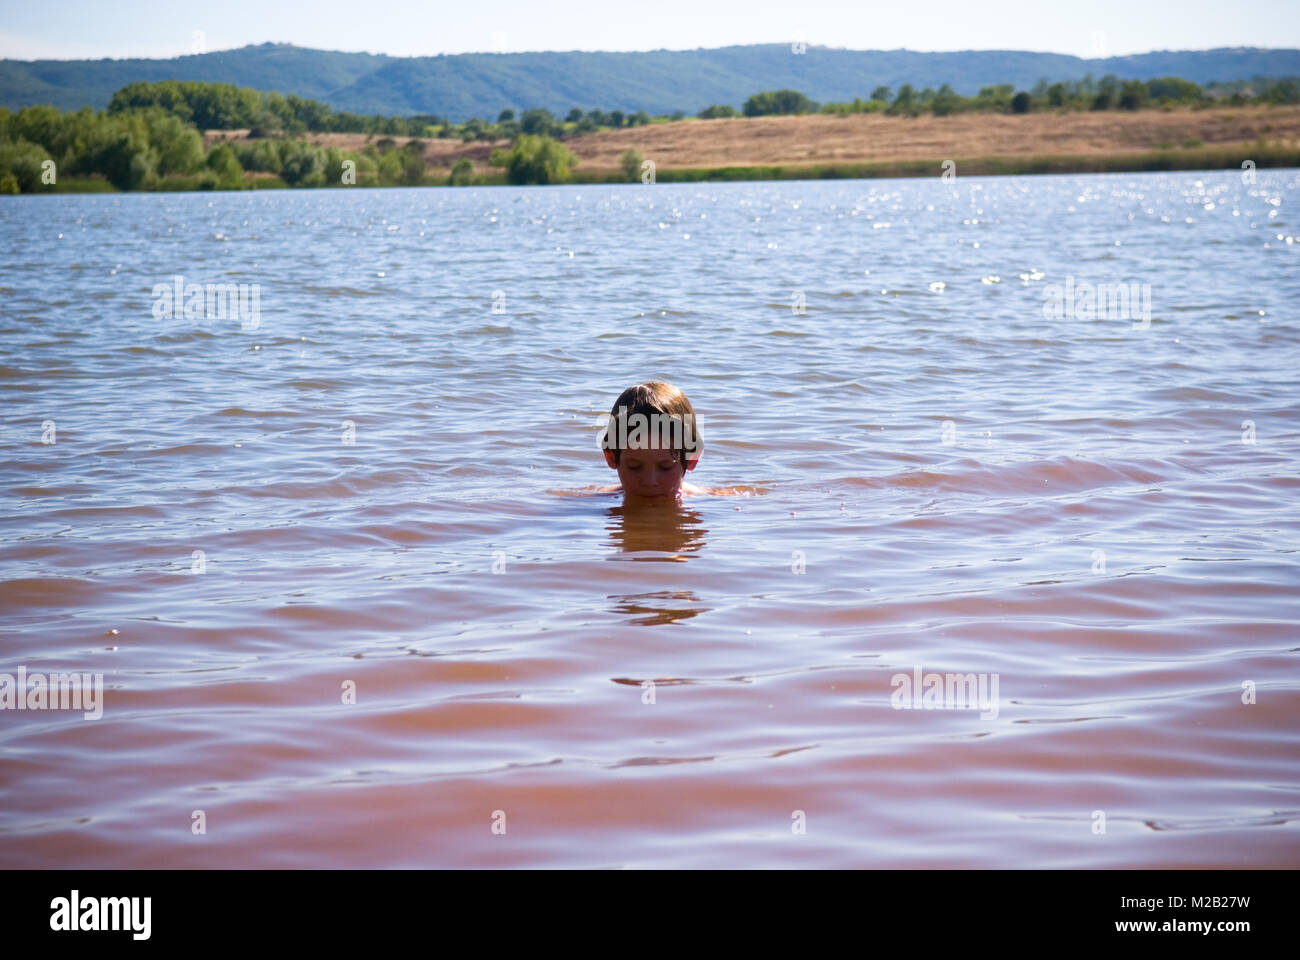 a ten year old boy, with only his head above water, looks down into the murky pink water of Lac de Salagou in the - Stock Image